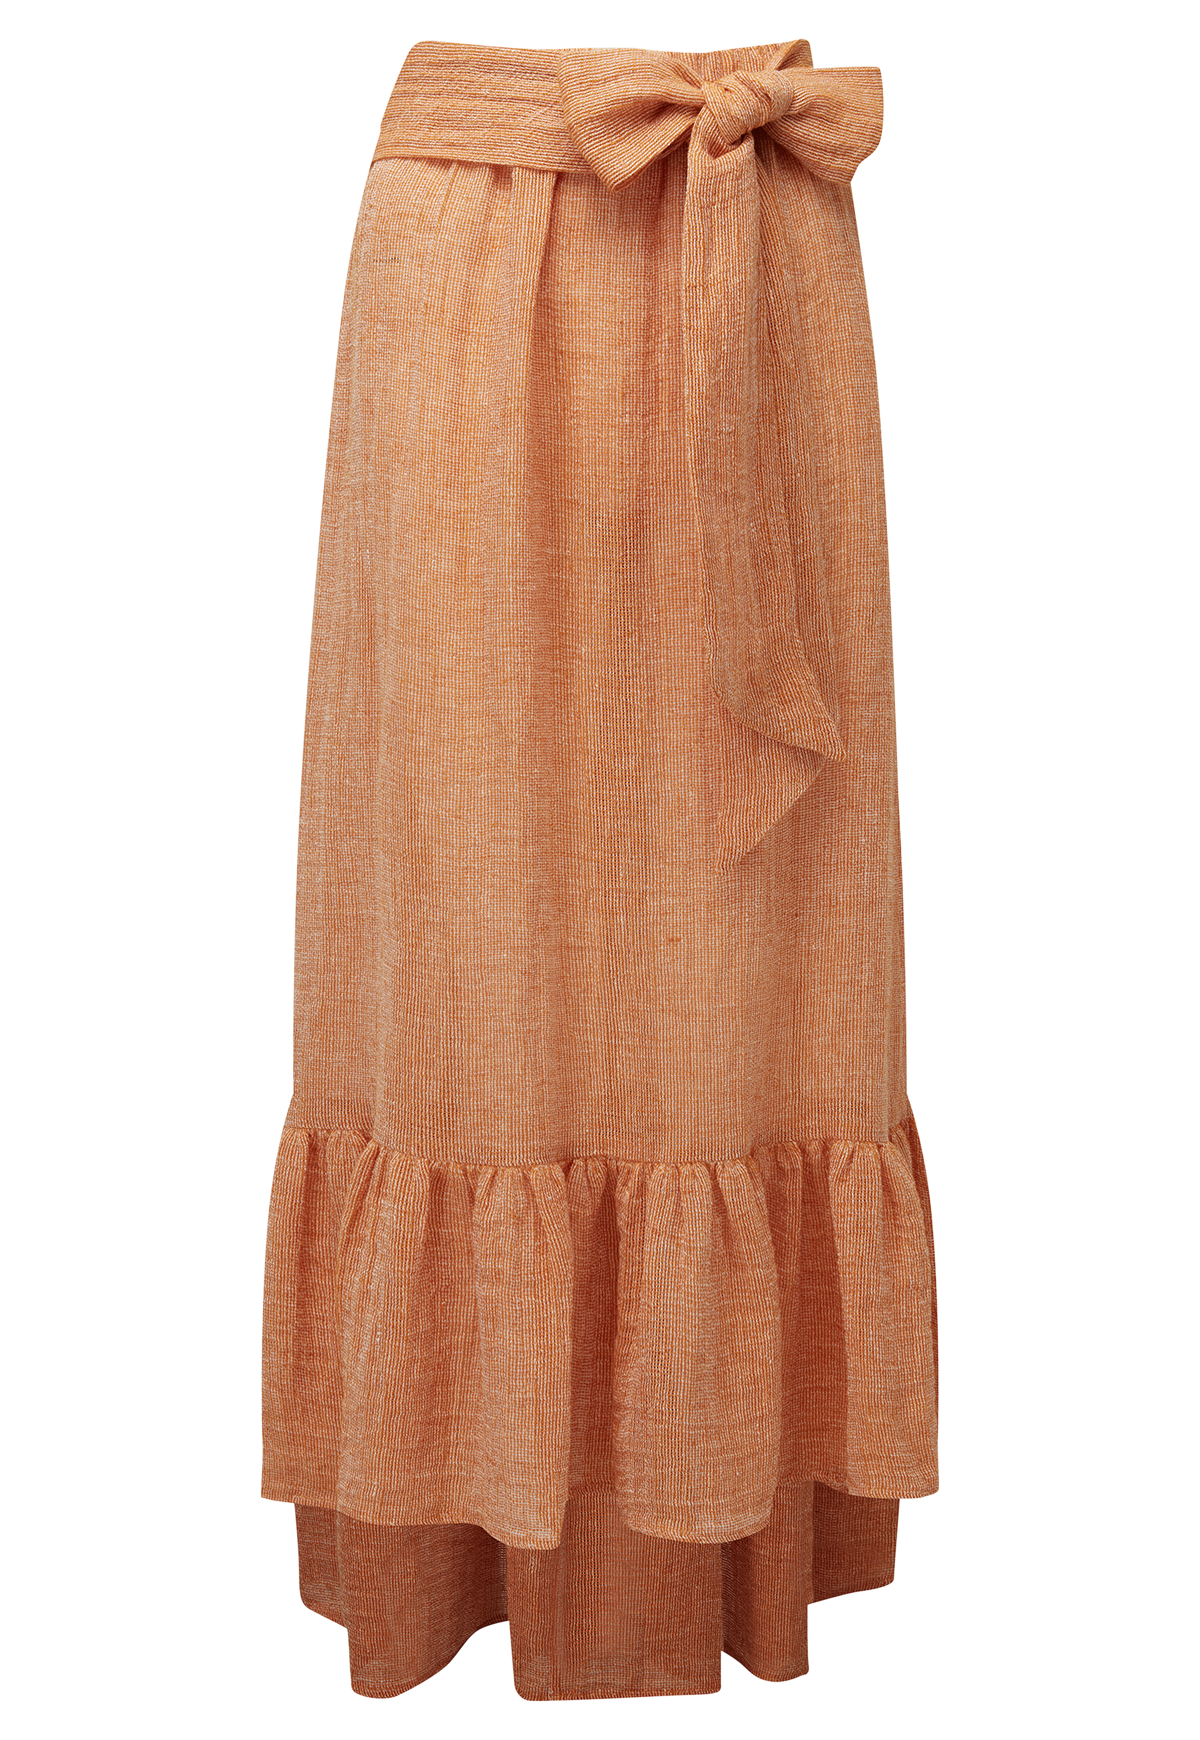 NICOLE ORANGE CHIOS GAUZE SKIRT